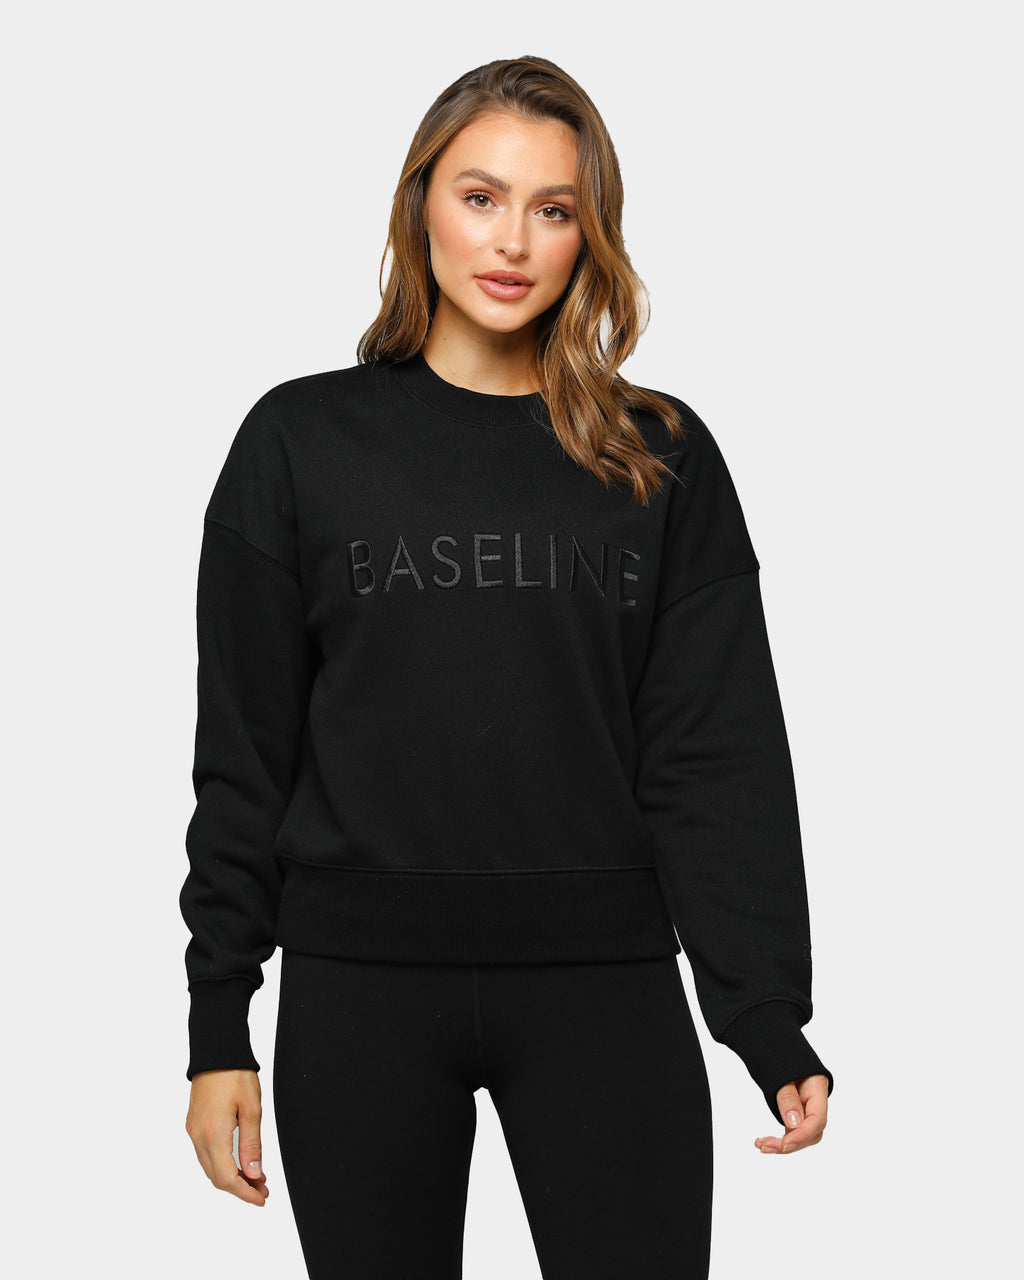 Ashy Bines Baseline Stand Out Sweater Black